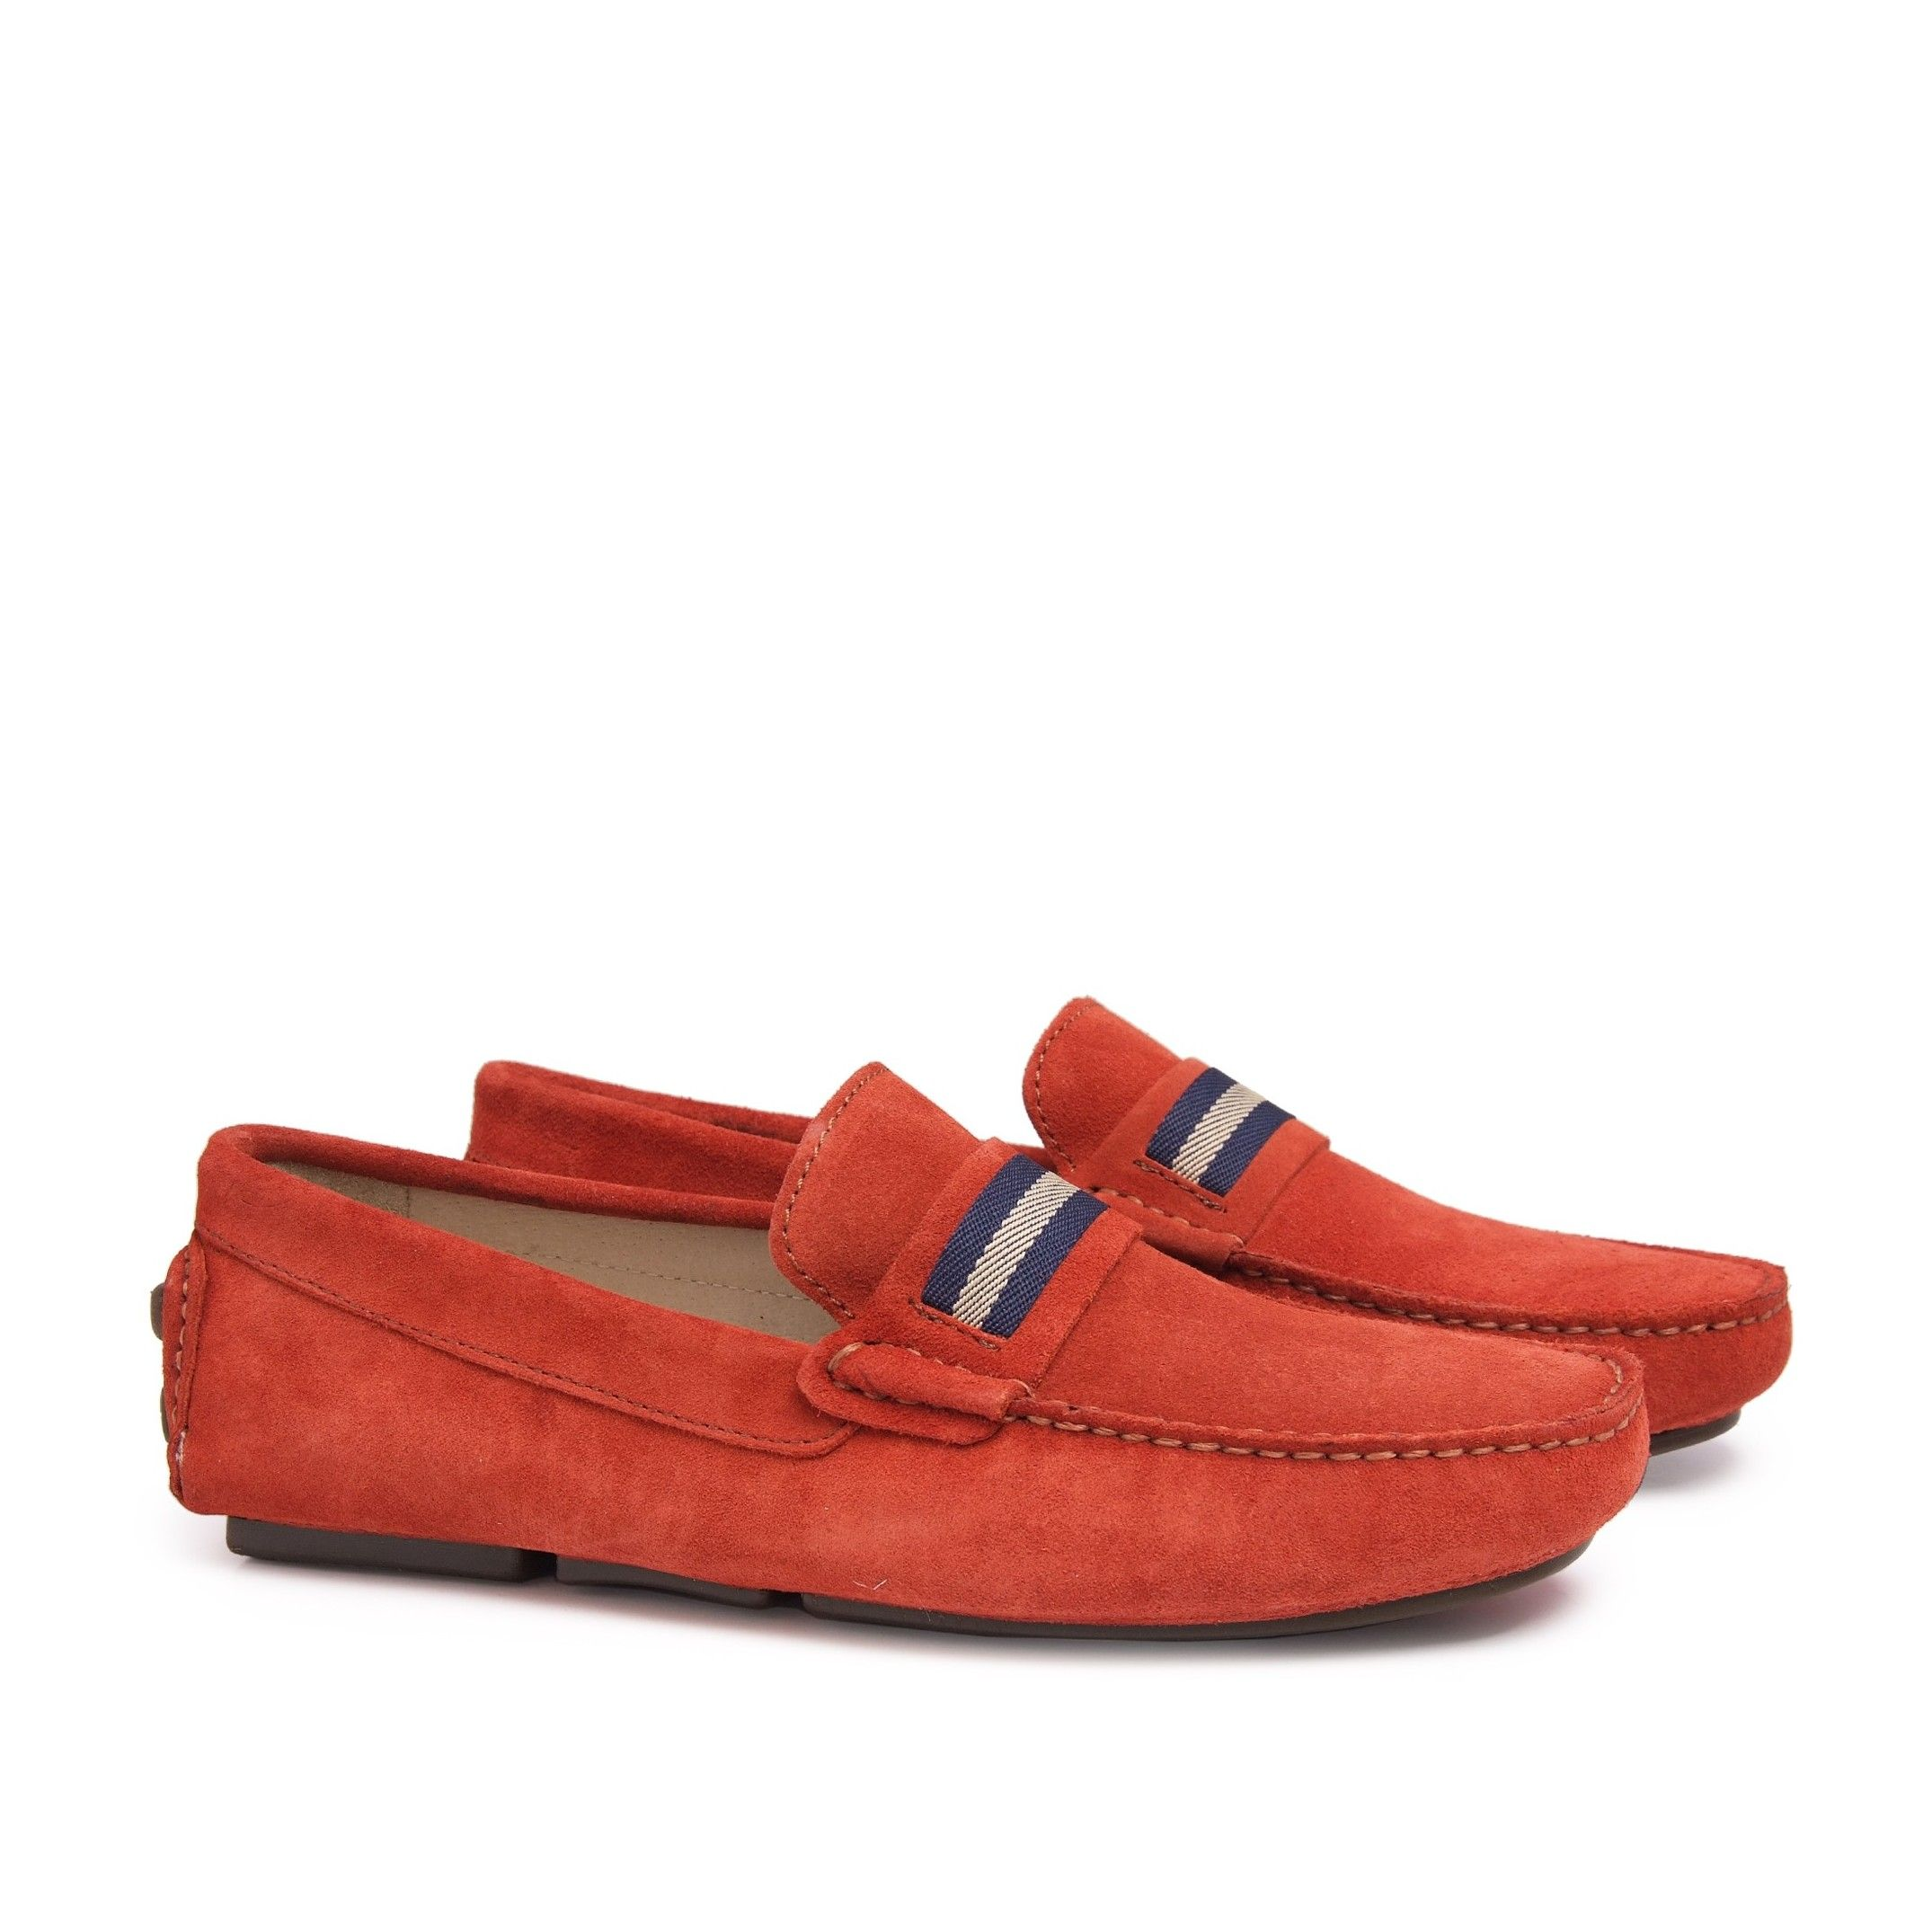 Leather Moccasins for Men Summer Original Shoes Castellanisimos